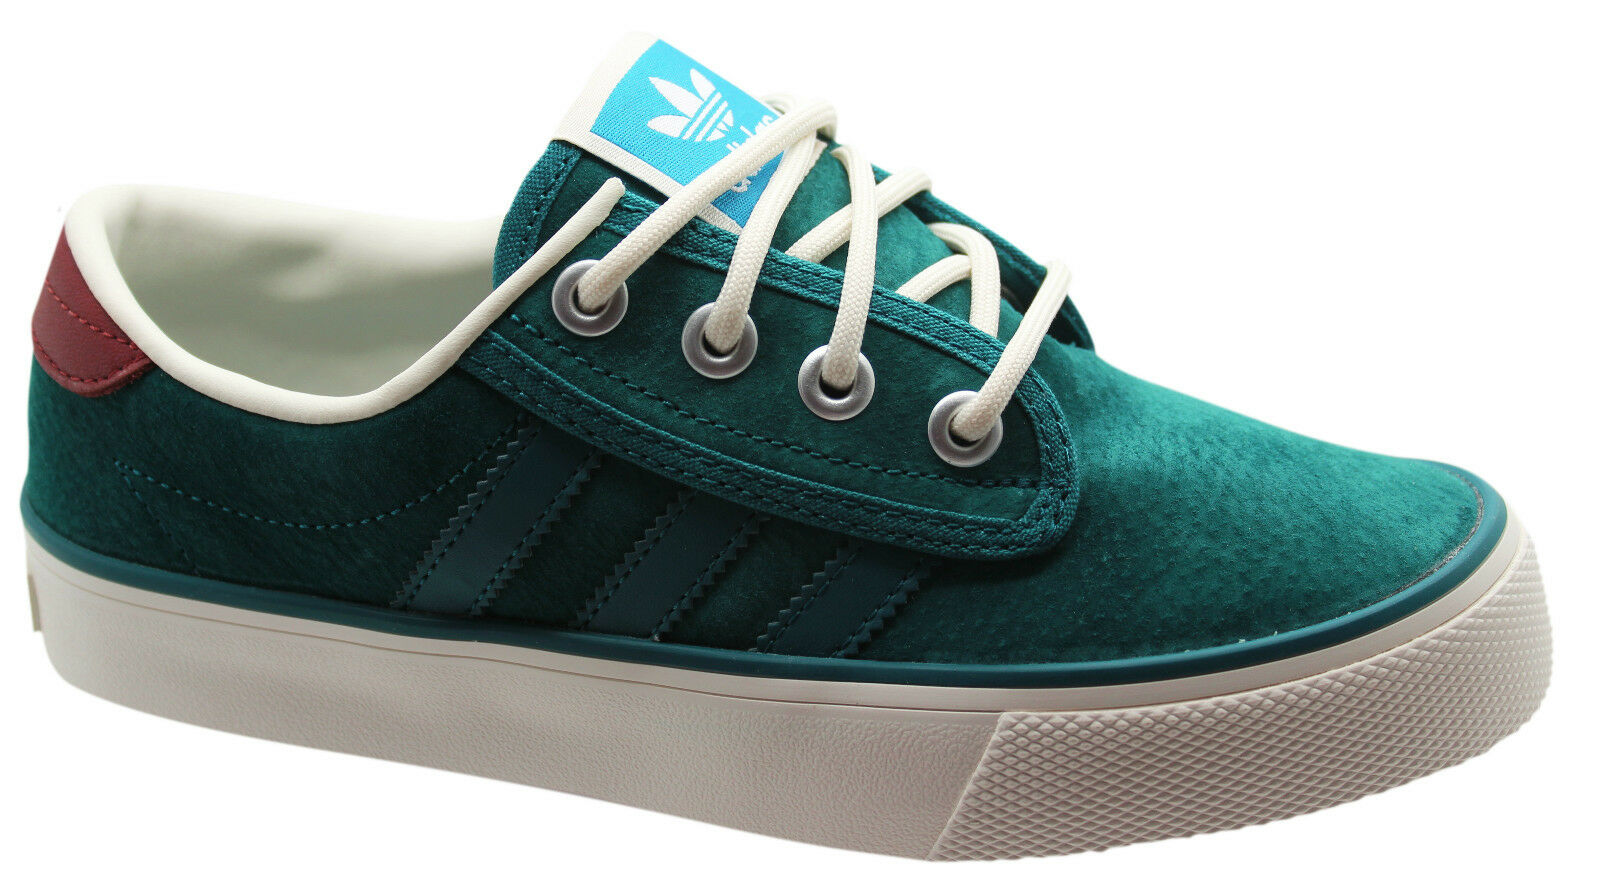 Adidas Originals Kiel Mens Trainers Unisex Shoes Teal Green Leather C76741 D67 Cheap and beautiful fashion